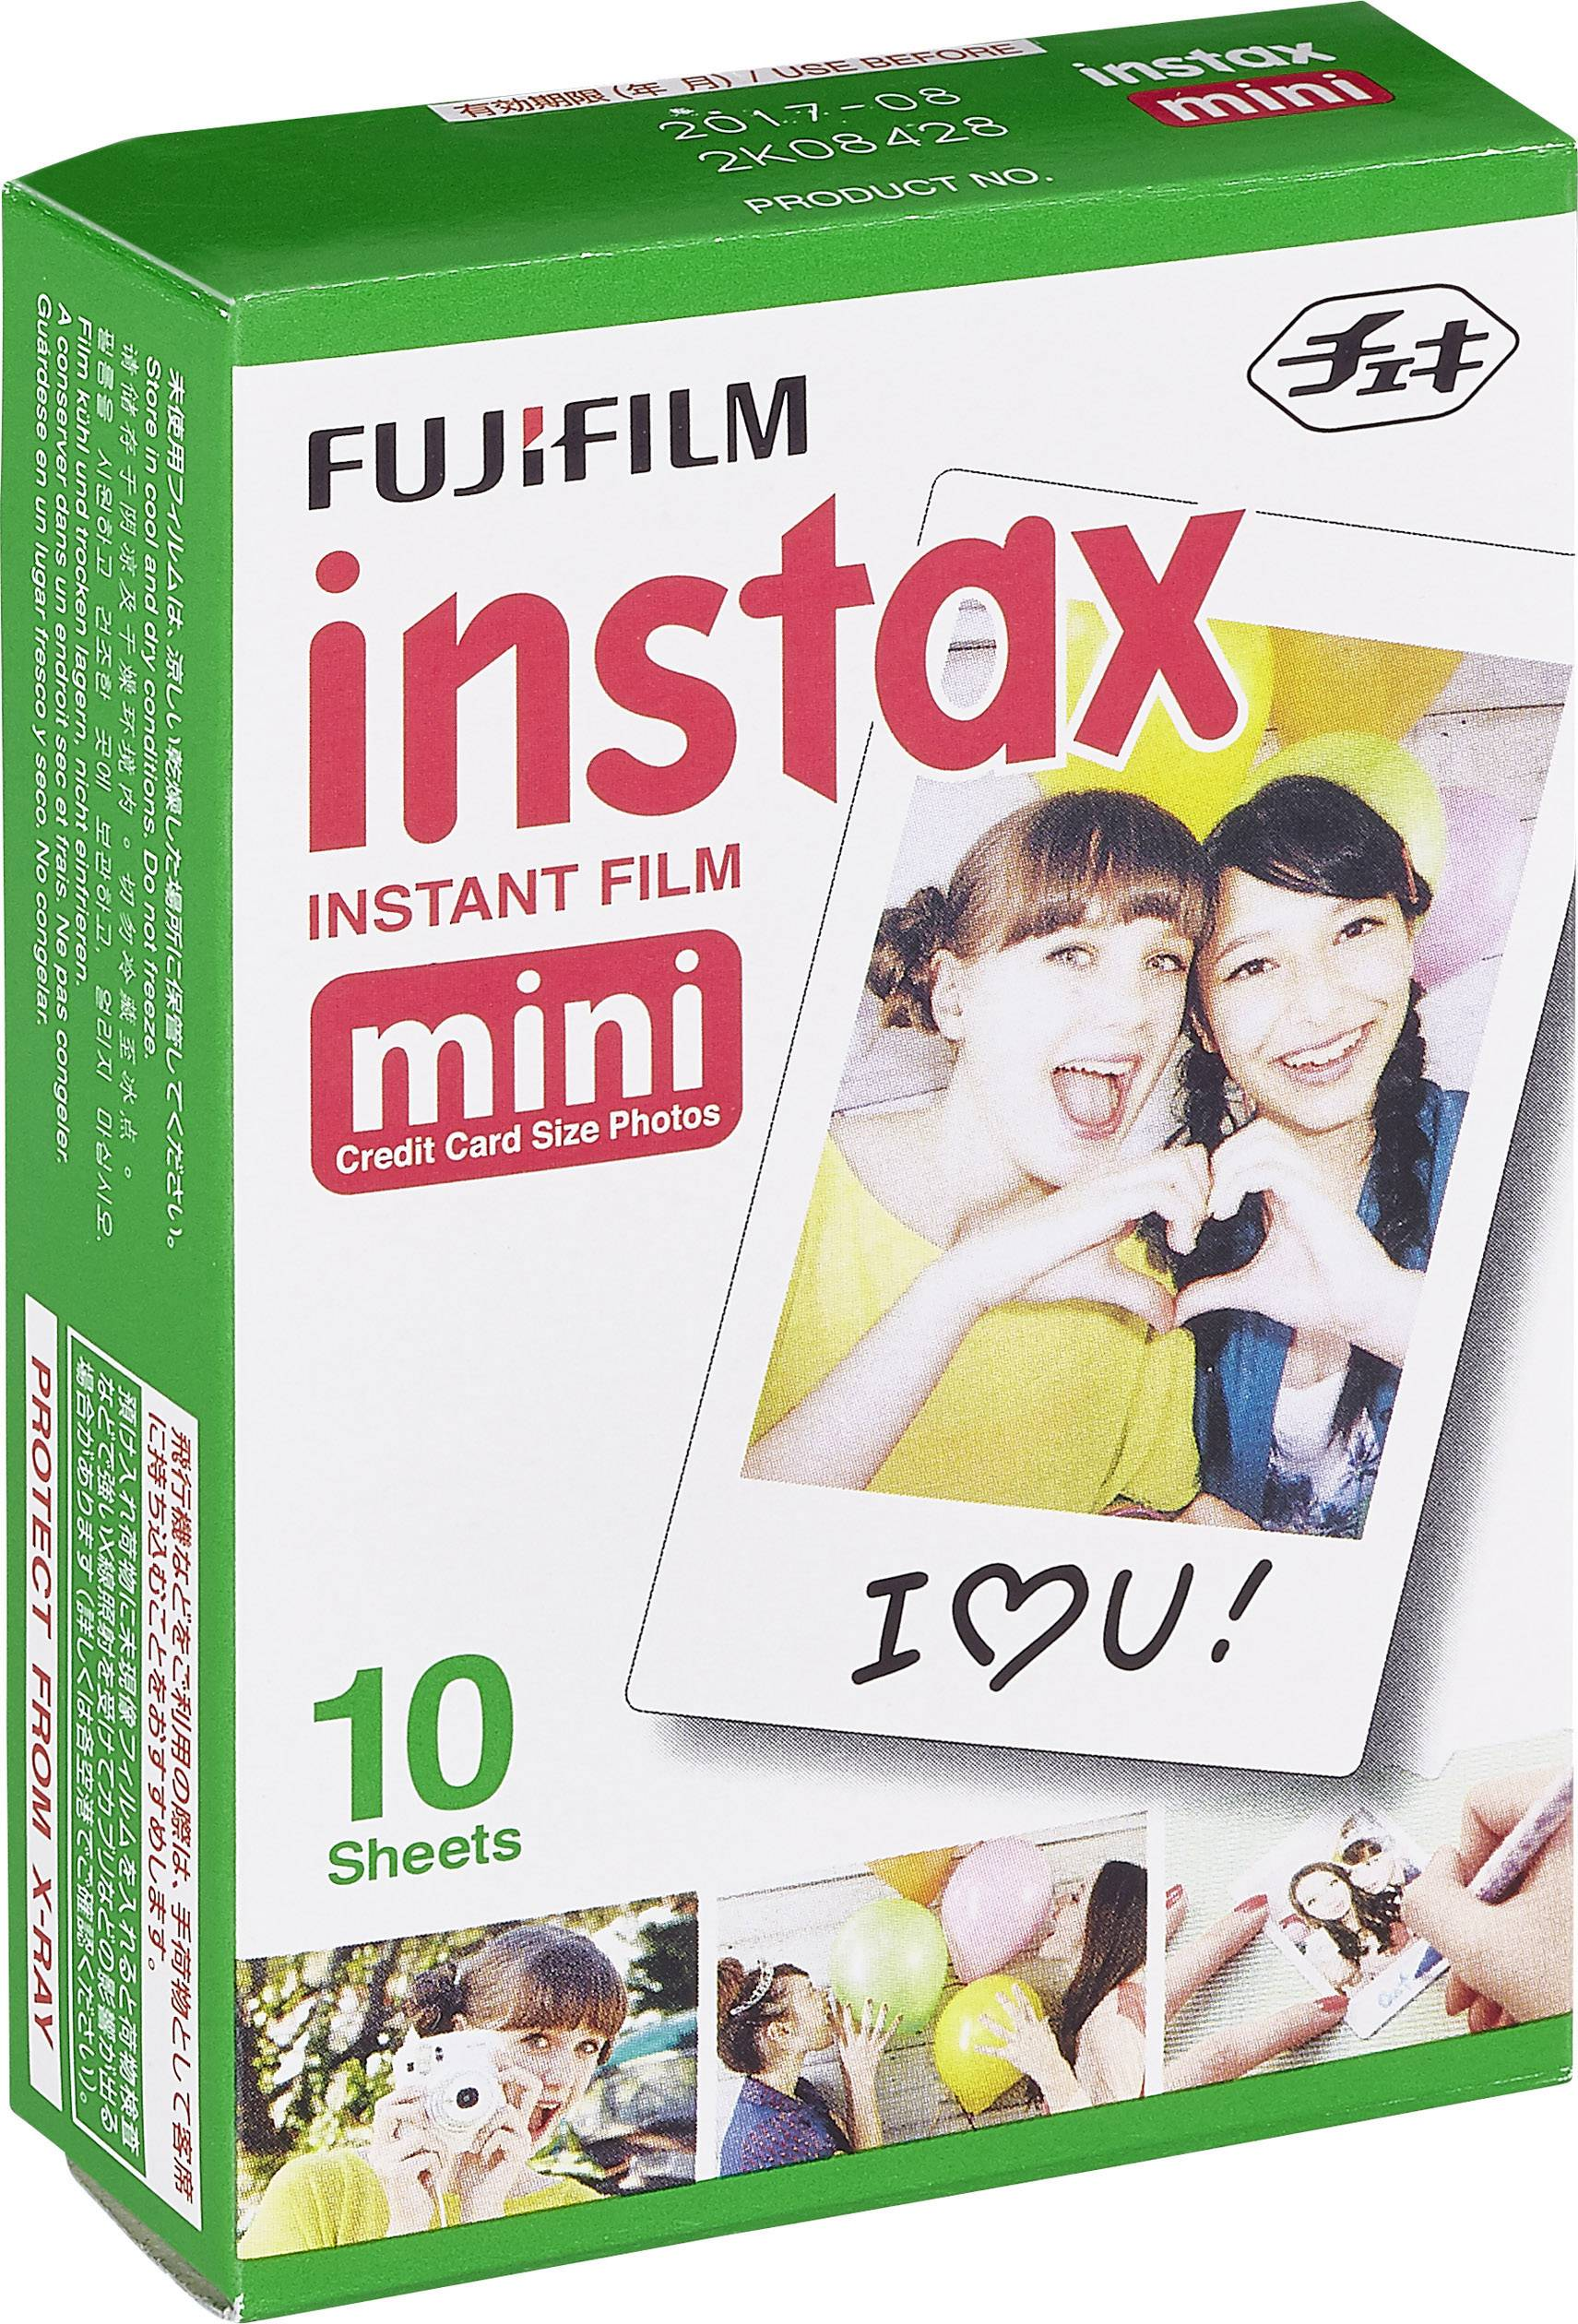 کاغذ عکس fuji film insatx mini